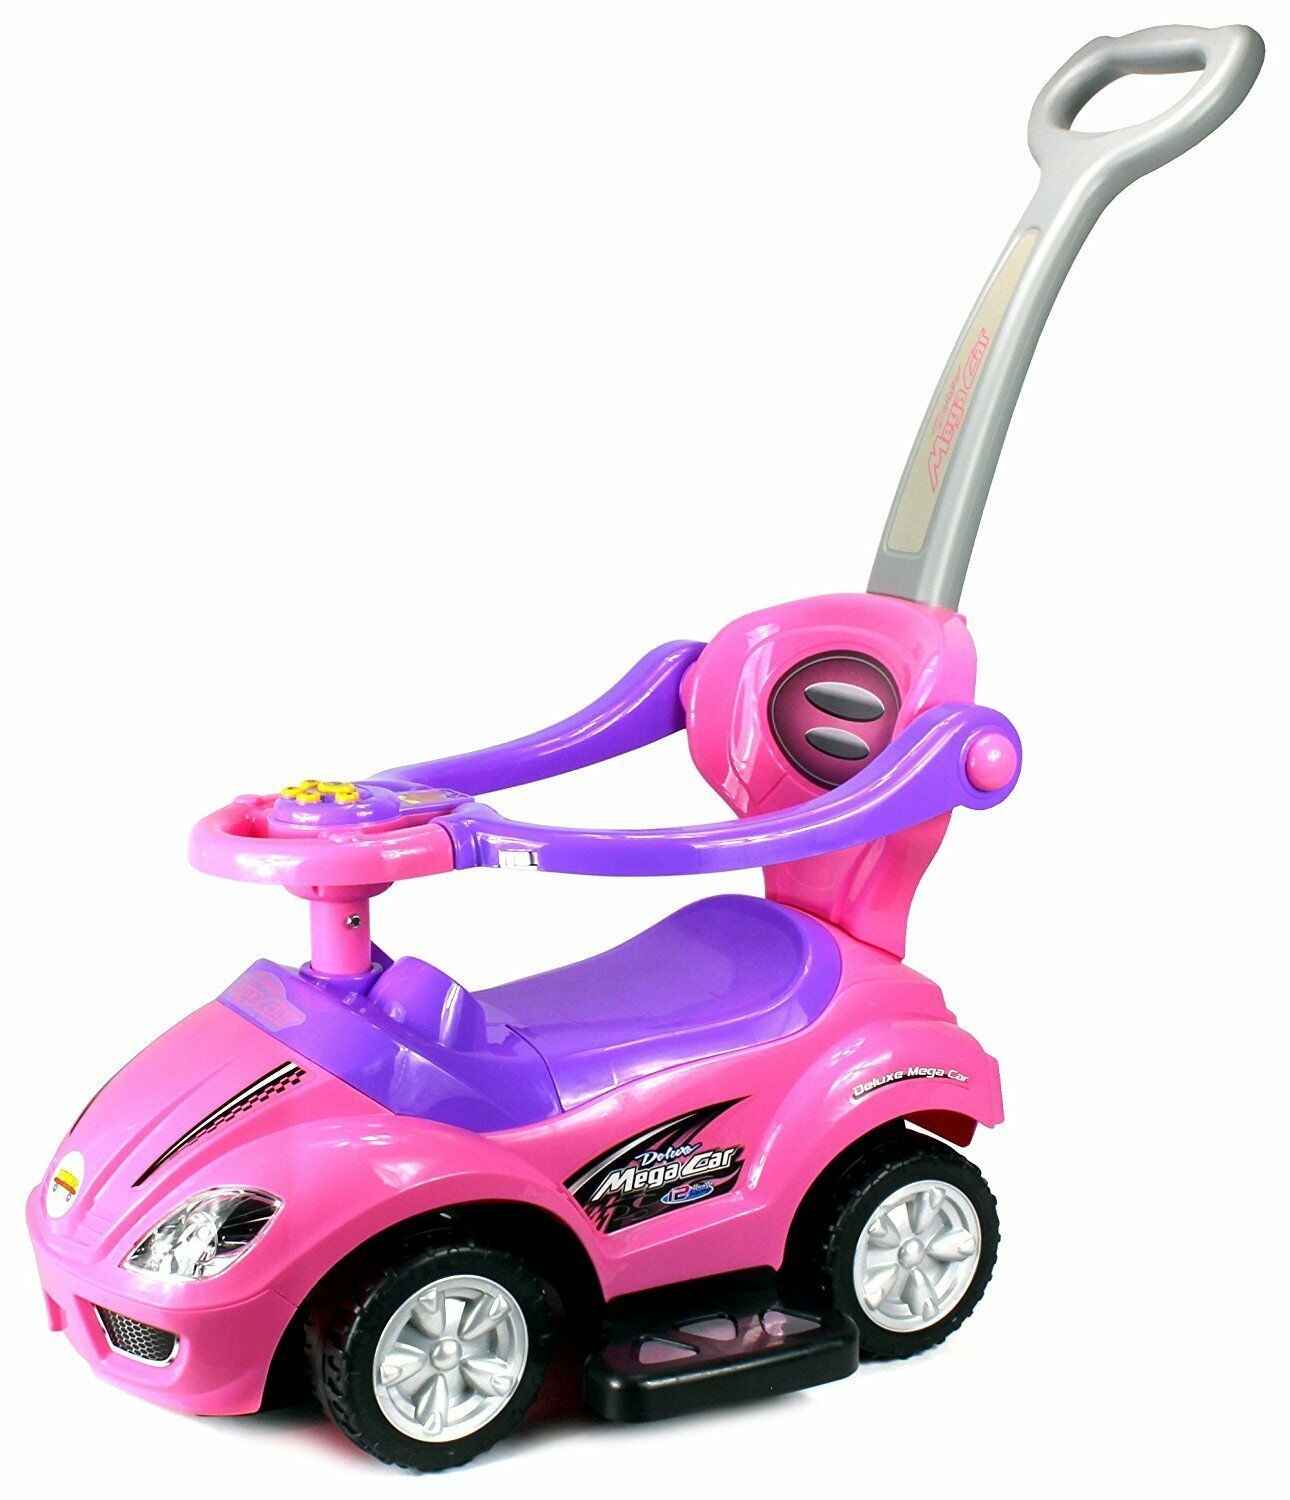 Details about Deluxe Mega 3 in 1 Car Children's Toy